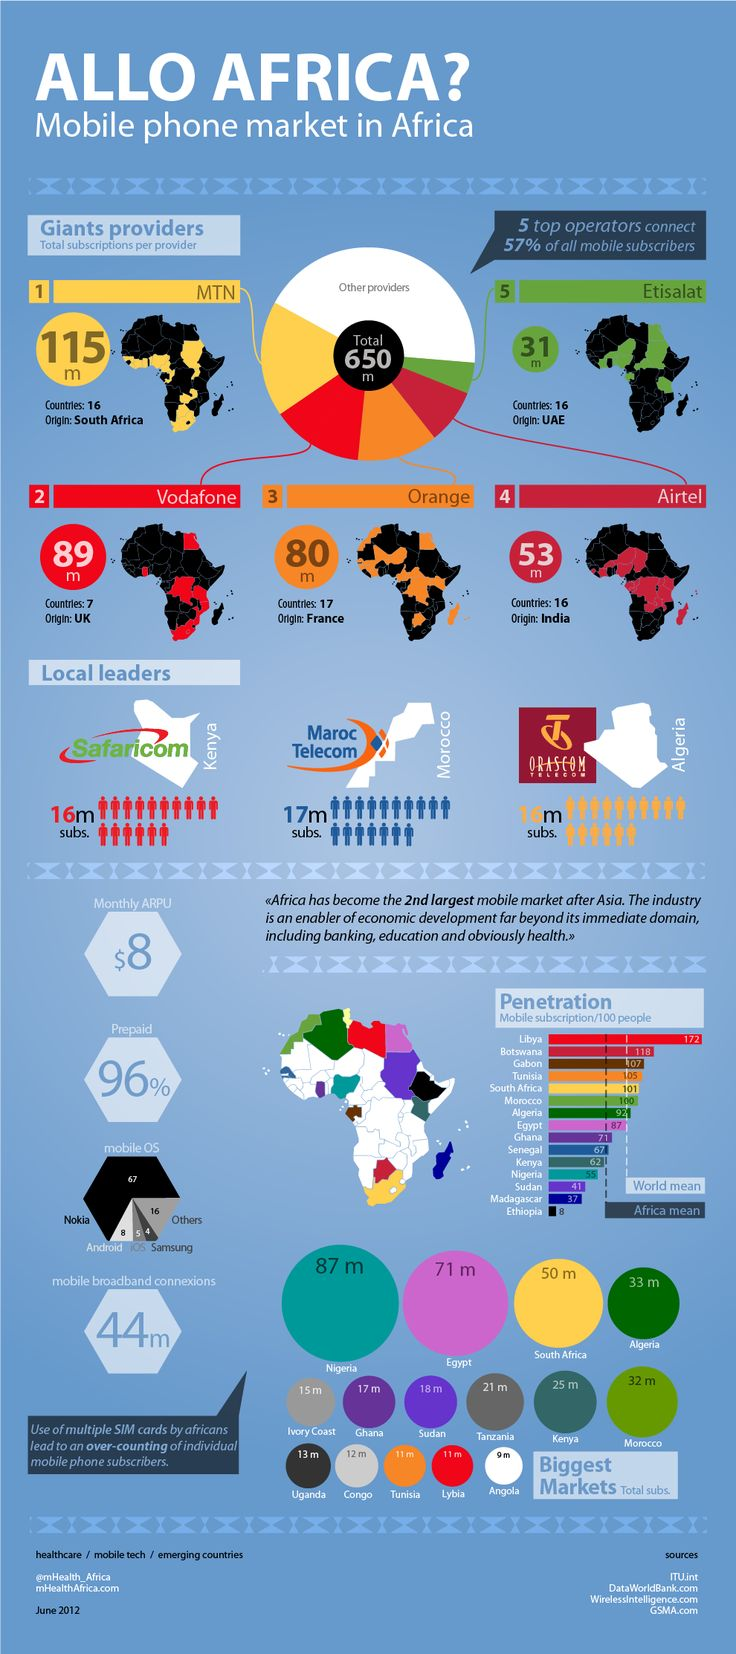 Mobile phone market in Africa